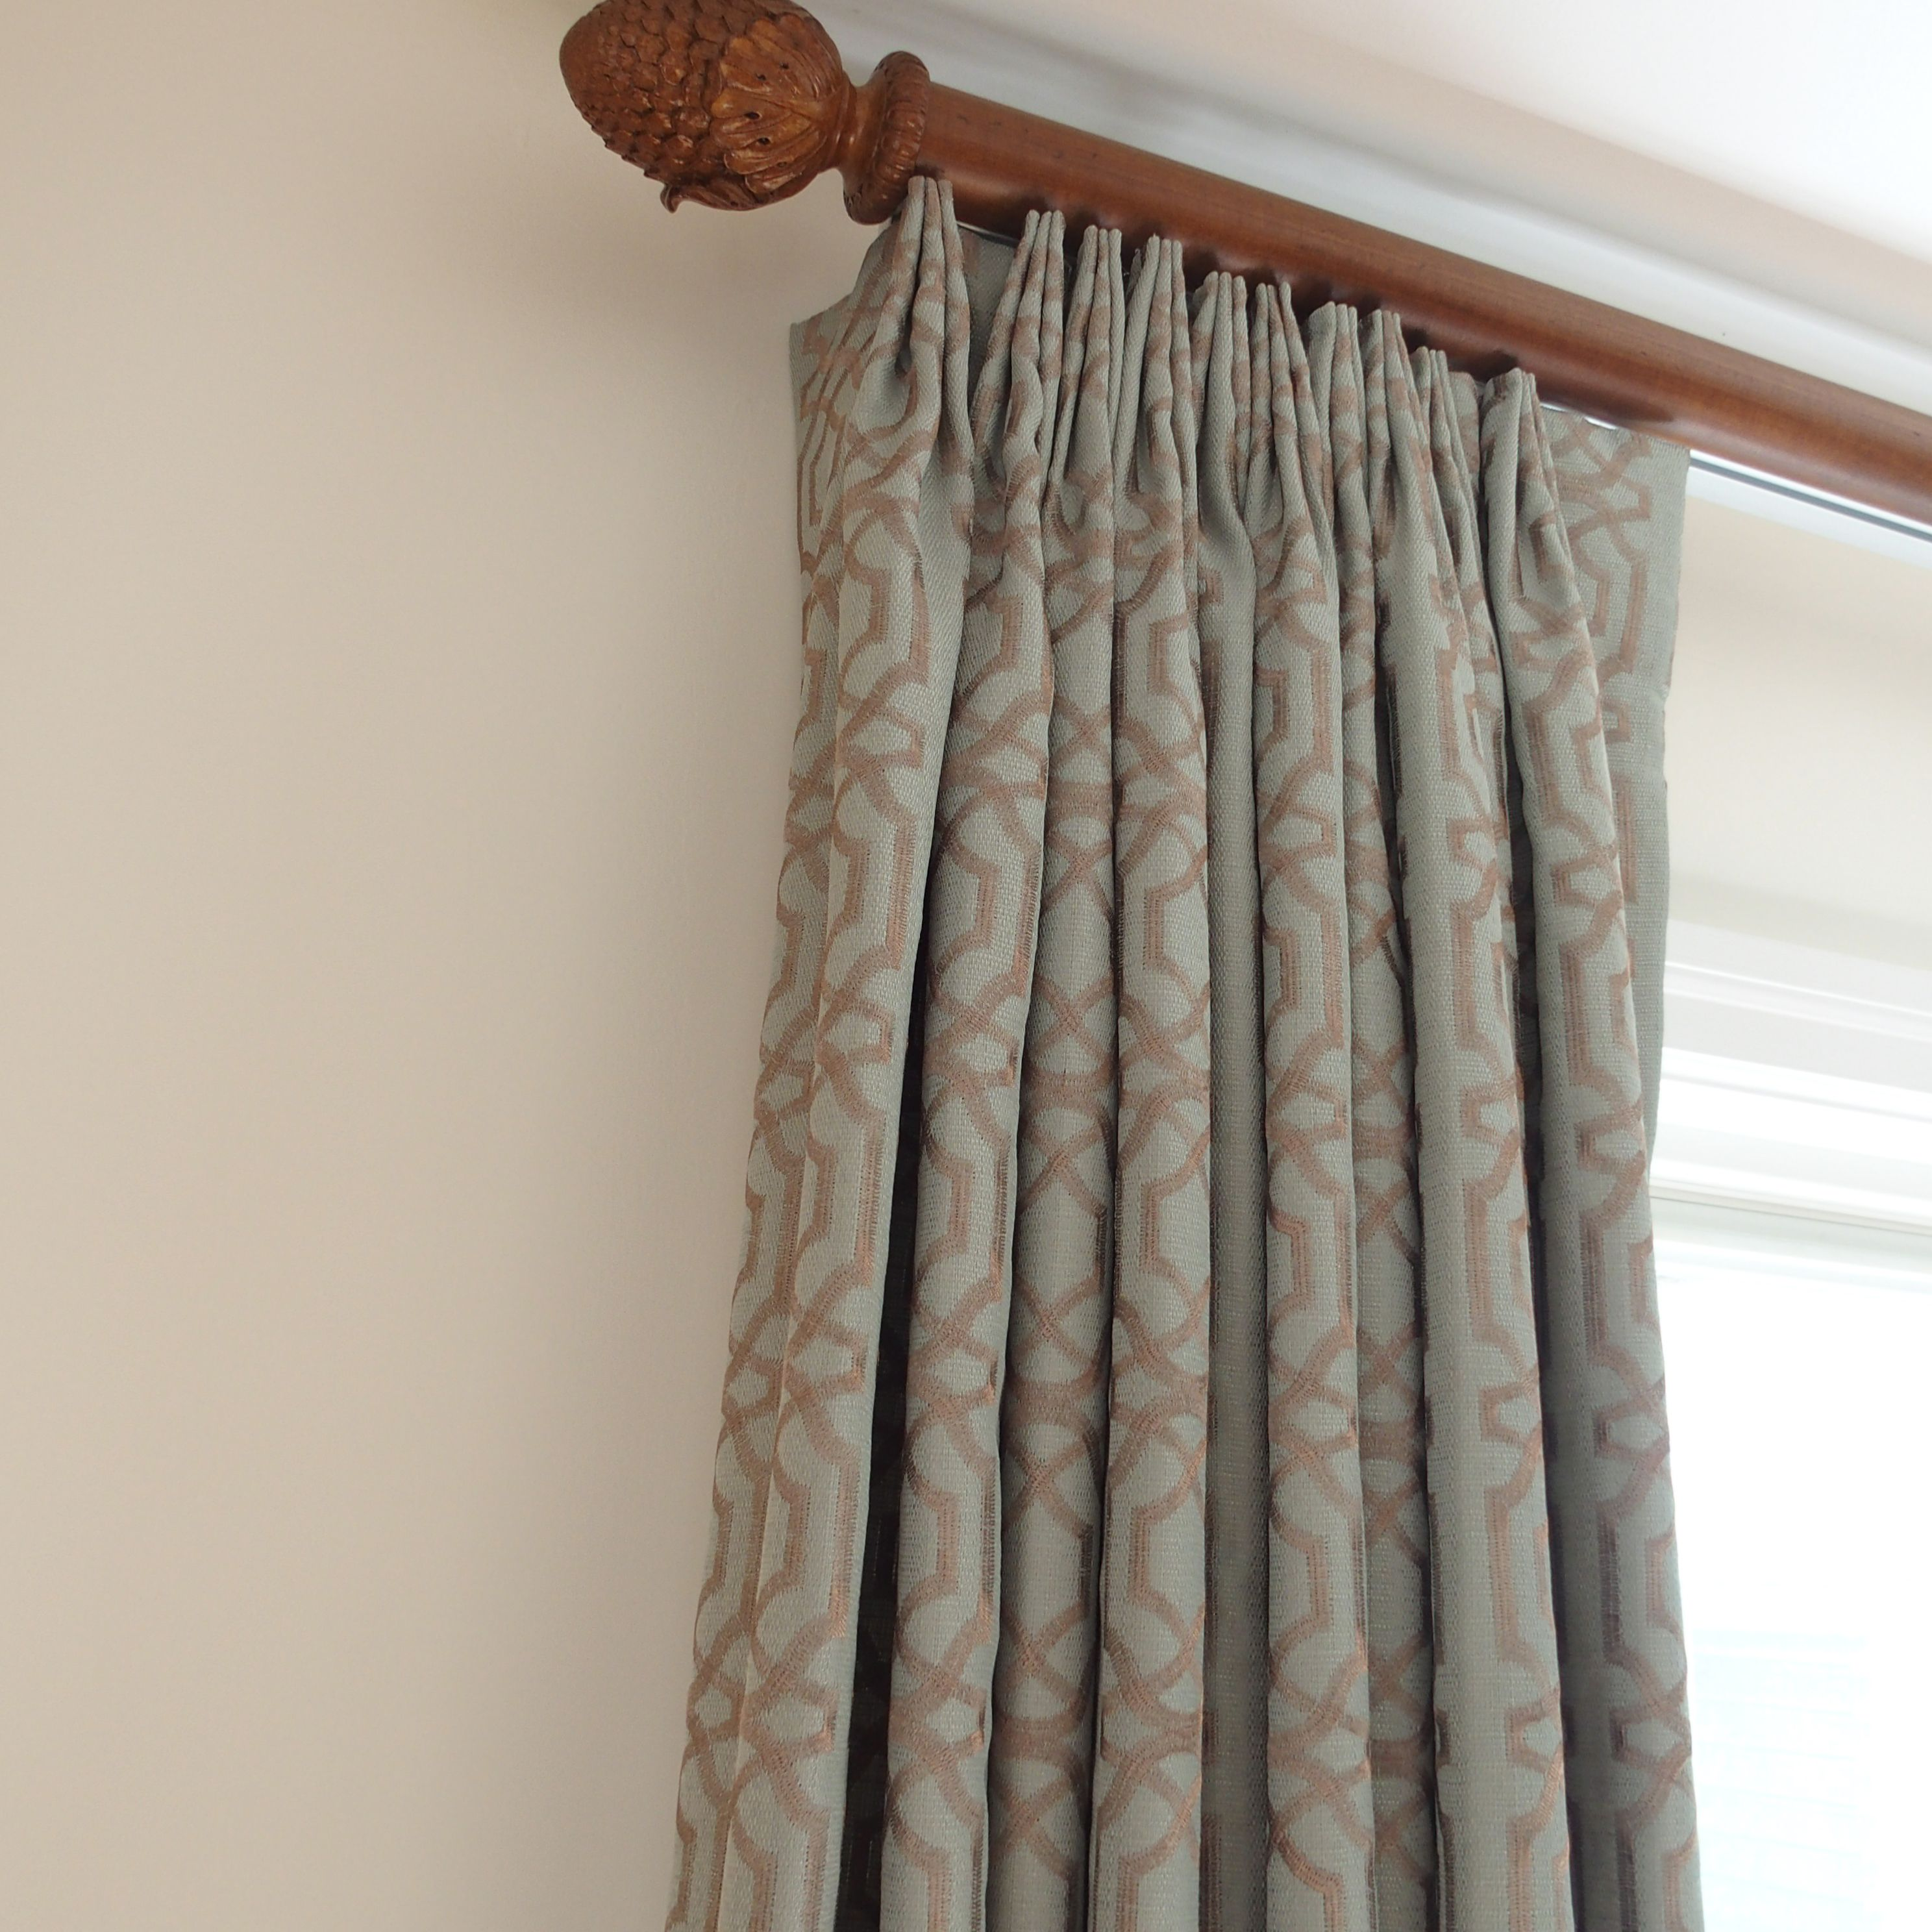 image ideas rod pinch charter of glass traverse doors best home pleat sliding for pleated drapes curtains